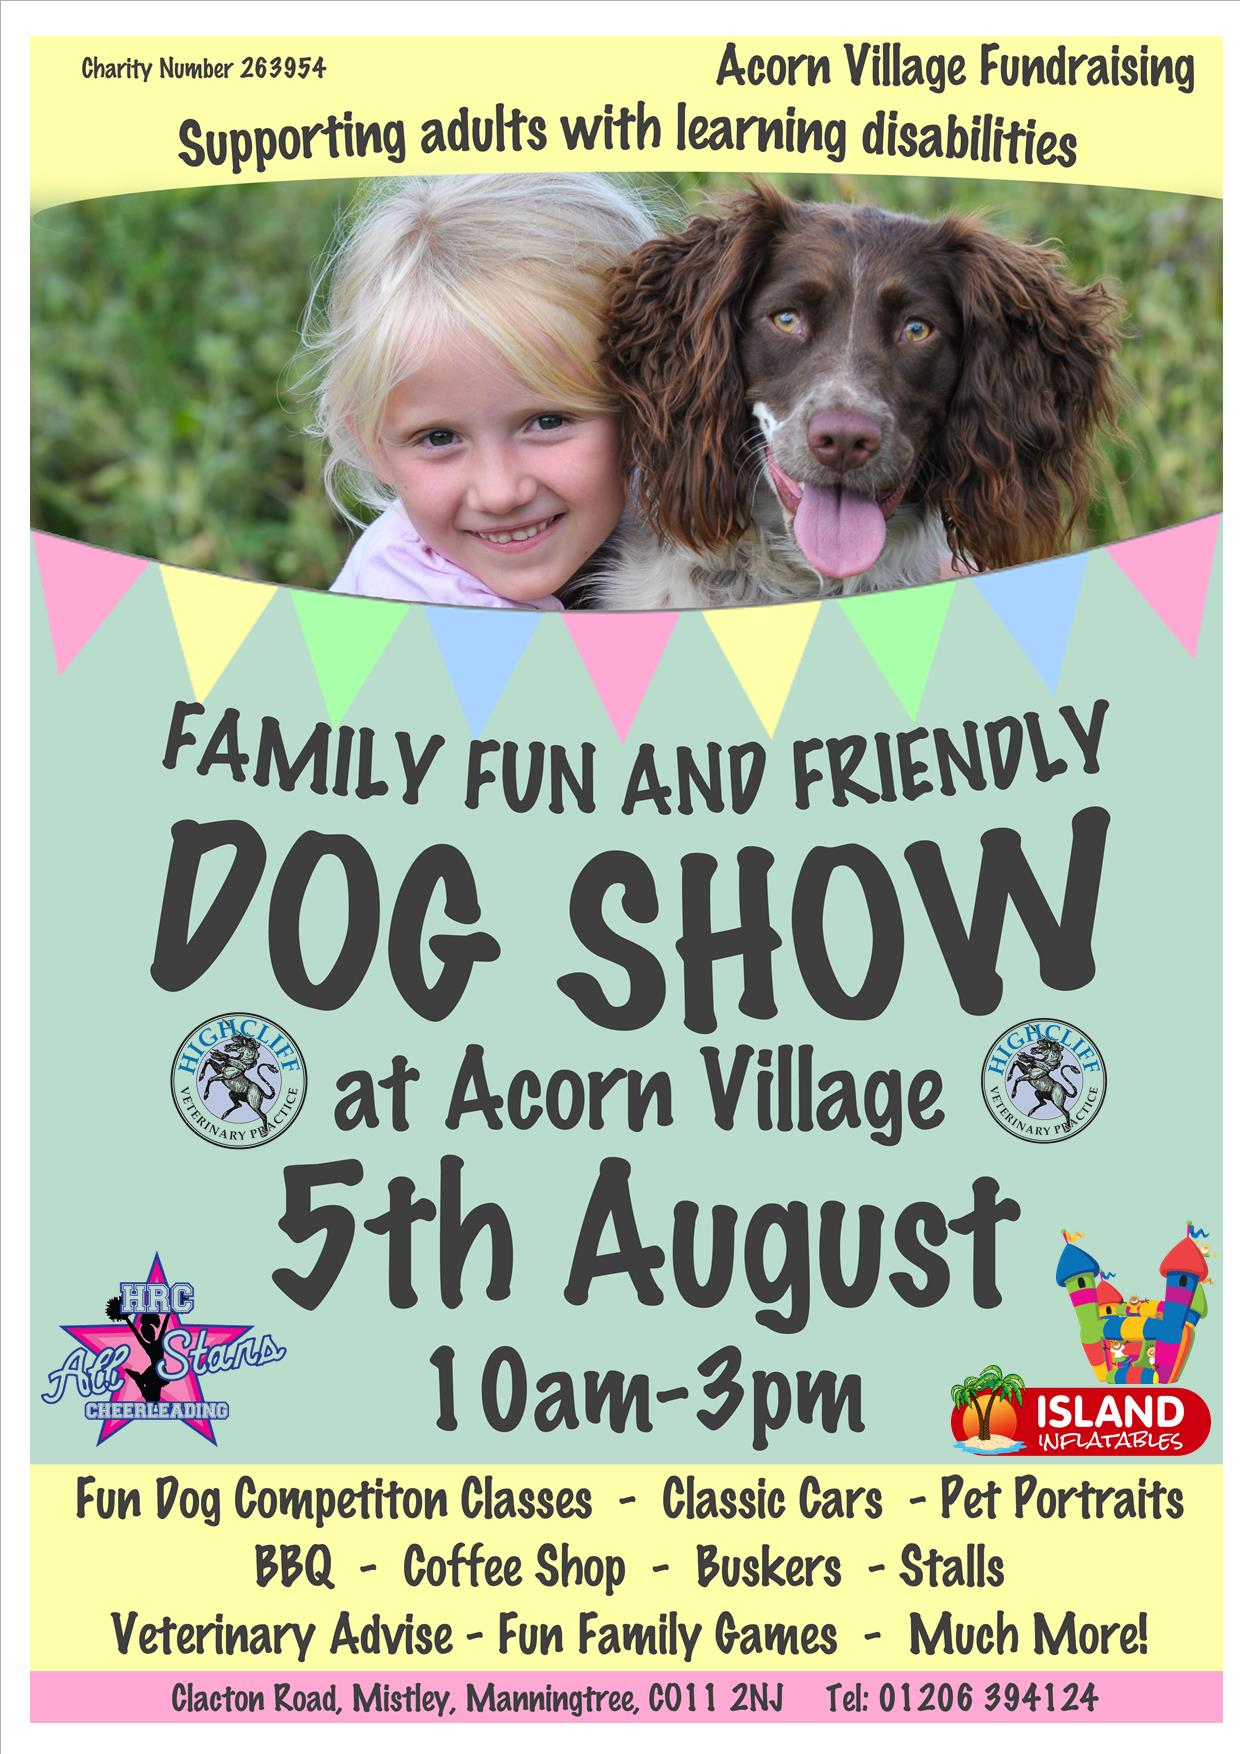 Family Fun & Friendly Dog Show with Classic Cars